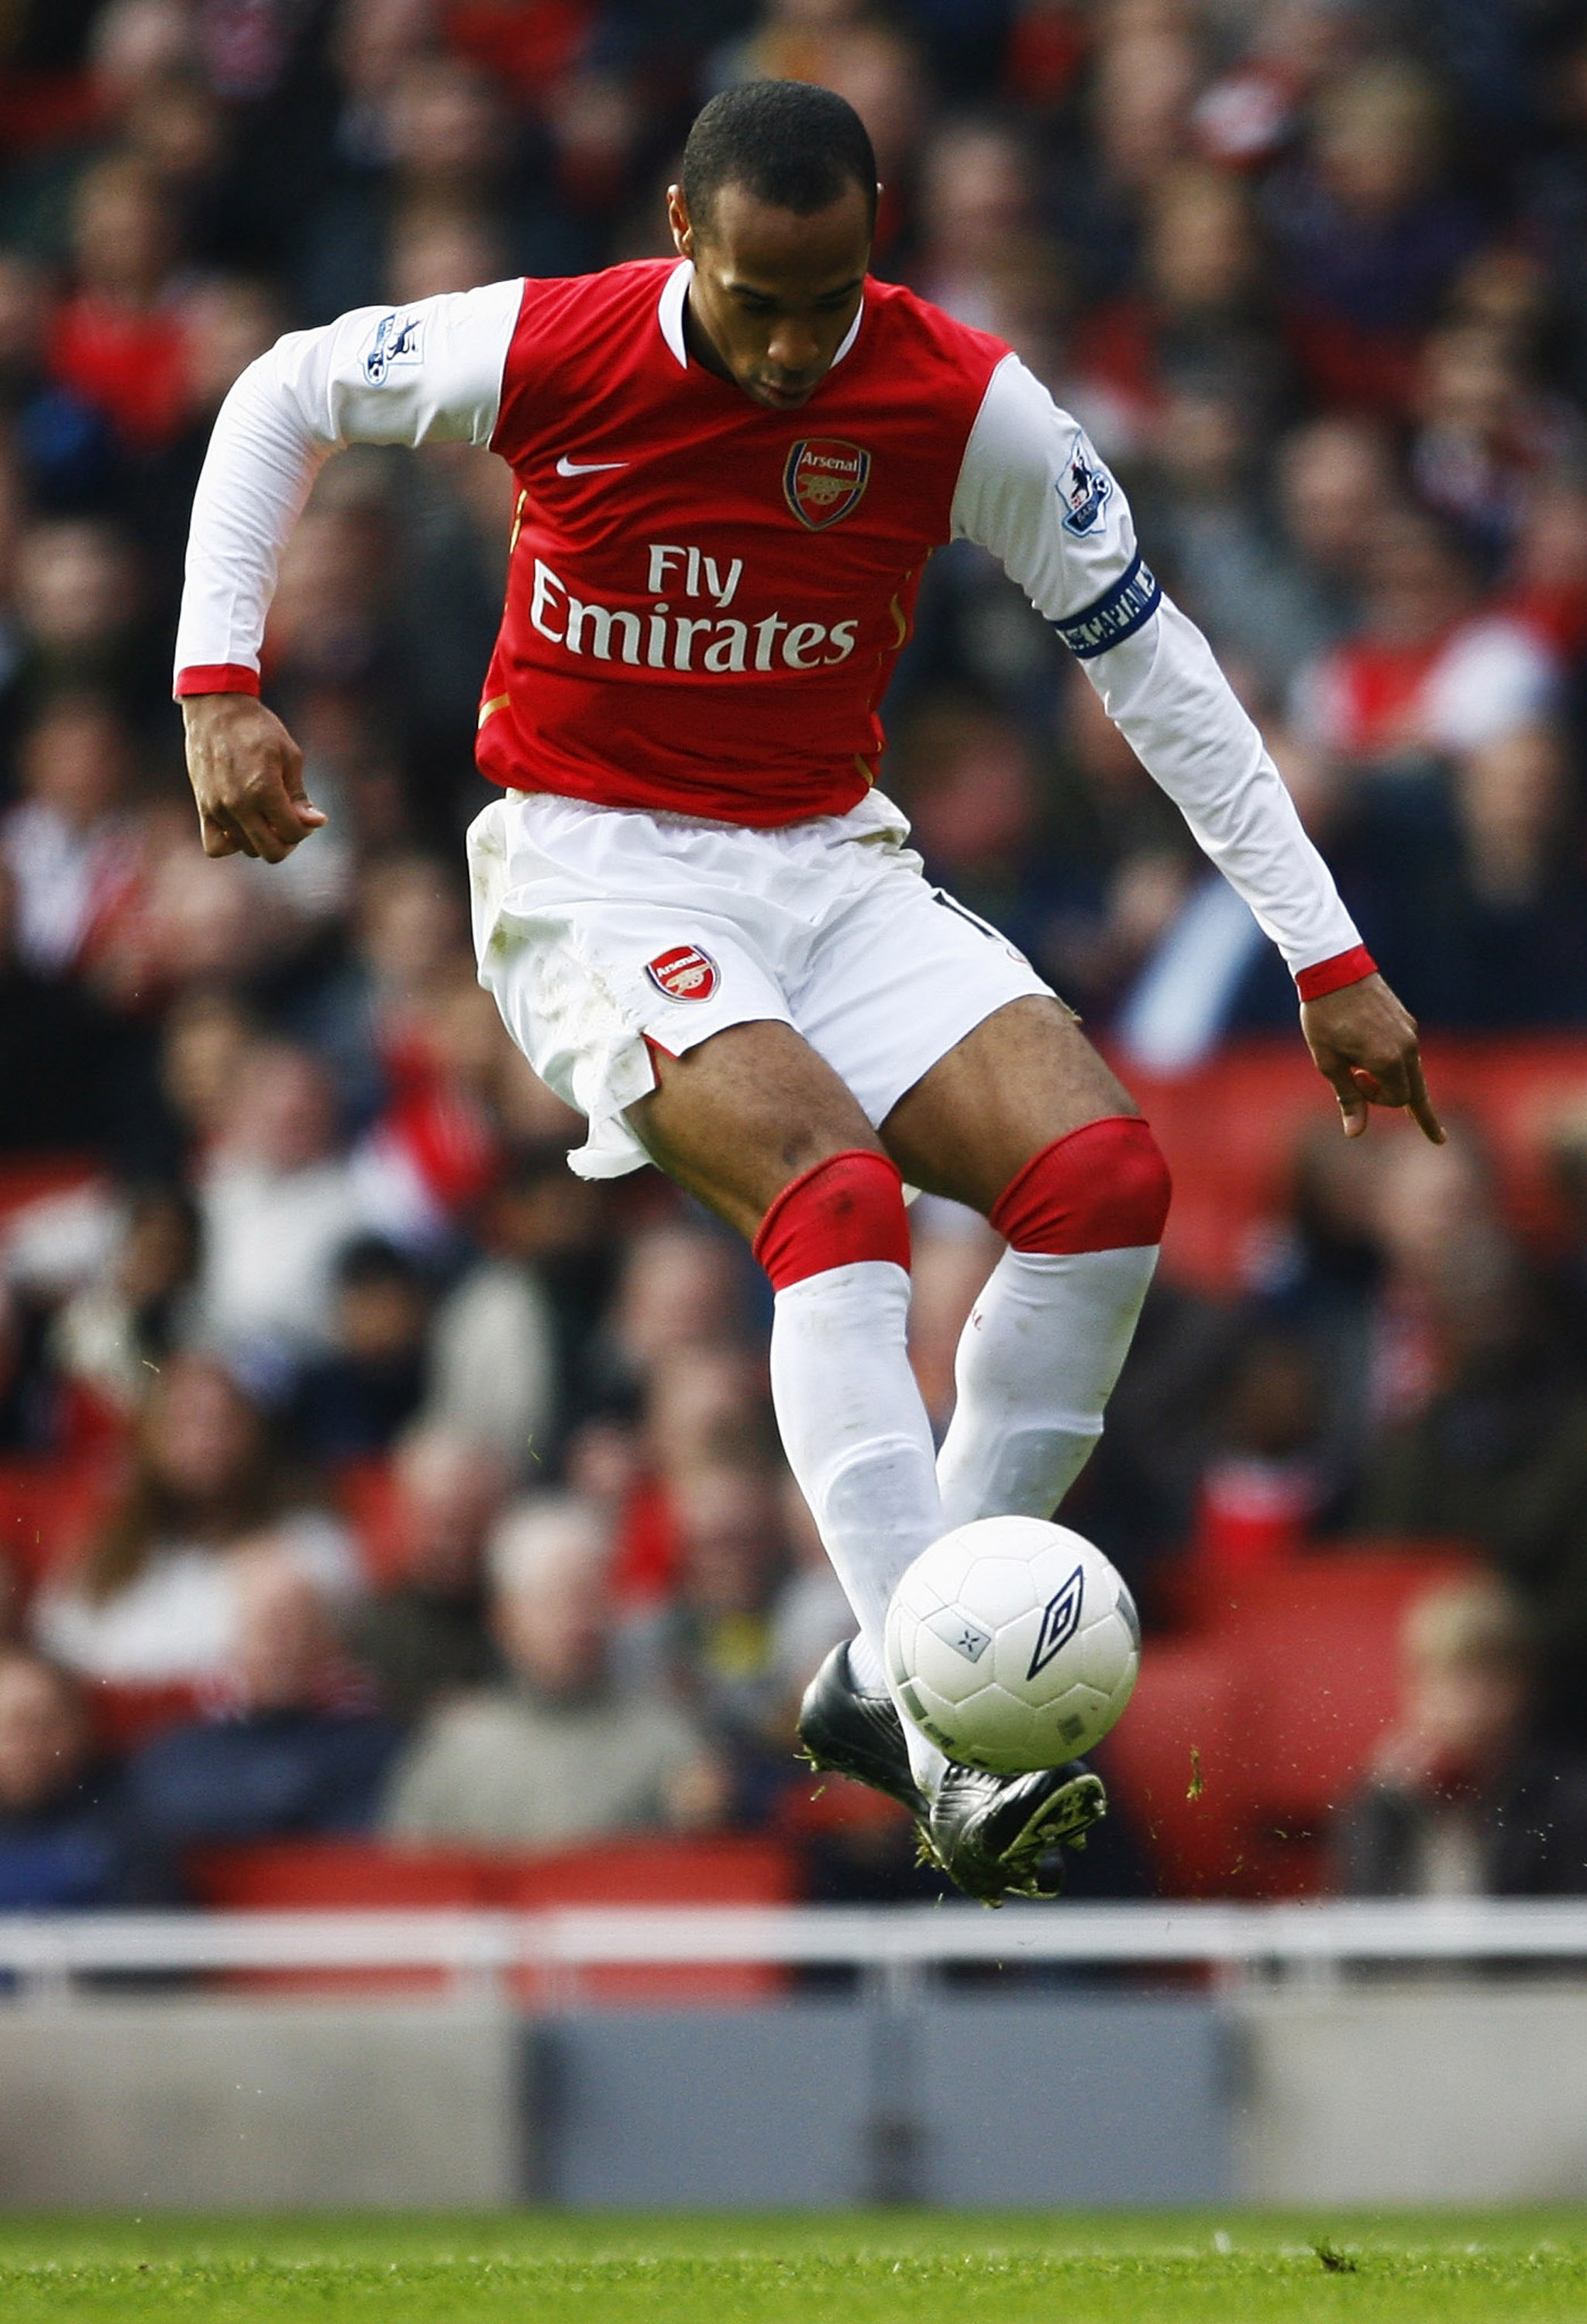 LONDON - FEBRUARY 17:  Thierry Henry of Arsenal in action during the FA Cup sponsored by E.ON 5th Round match between Arsenal and Blackburn Rovers at the Emirates Stadium on February 17, 2007, in London, England.  (Photo by Clive Mason/Getty Images)